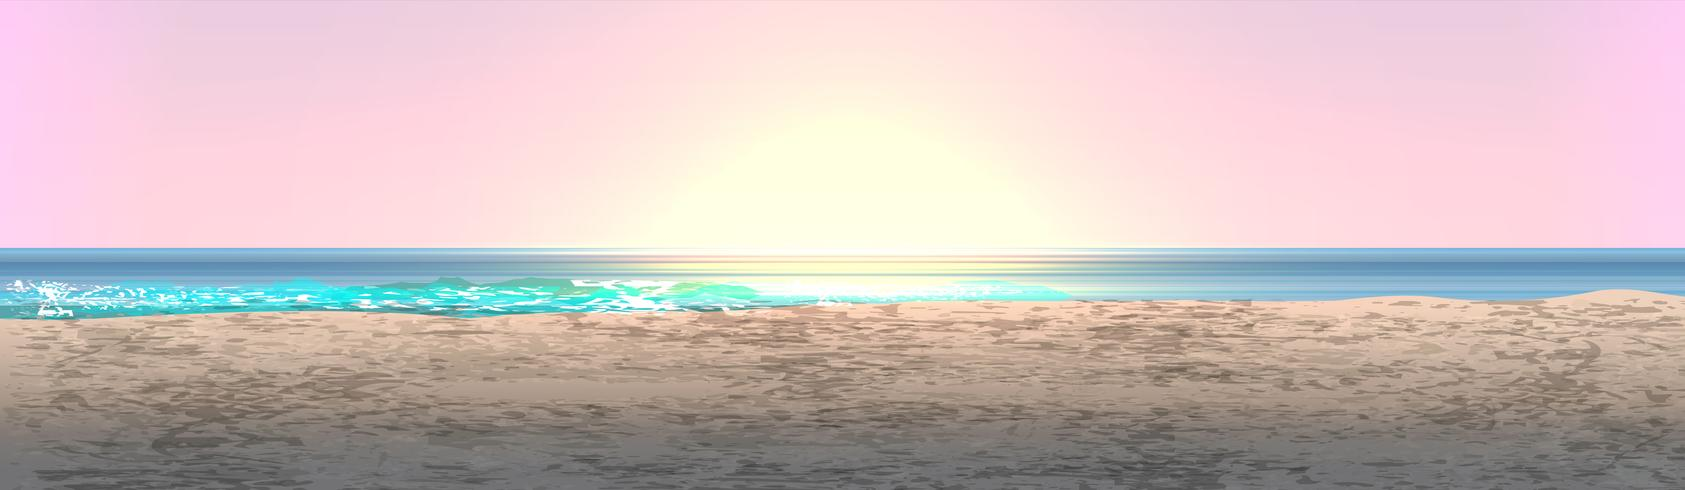 Realistic landscape of a beach with sunset / sunrise, vector illustration